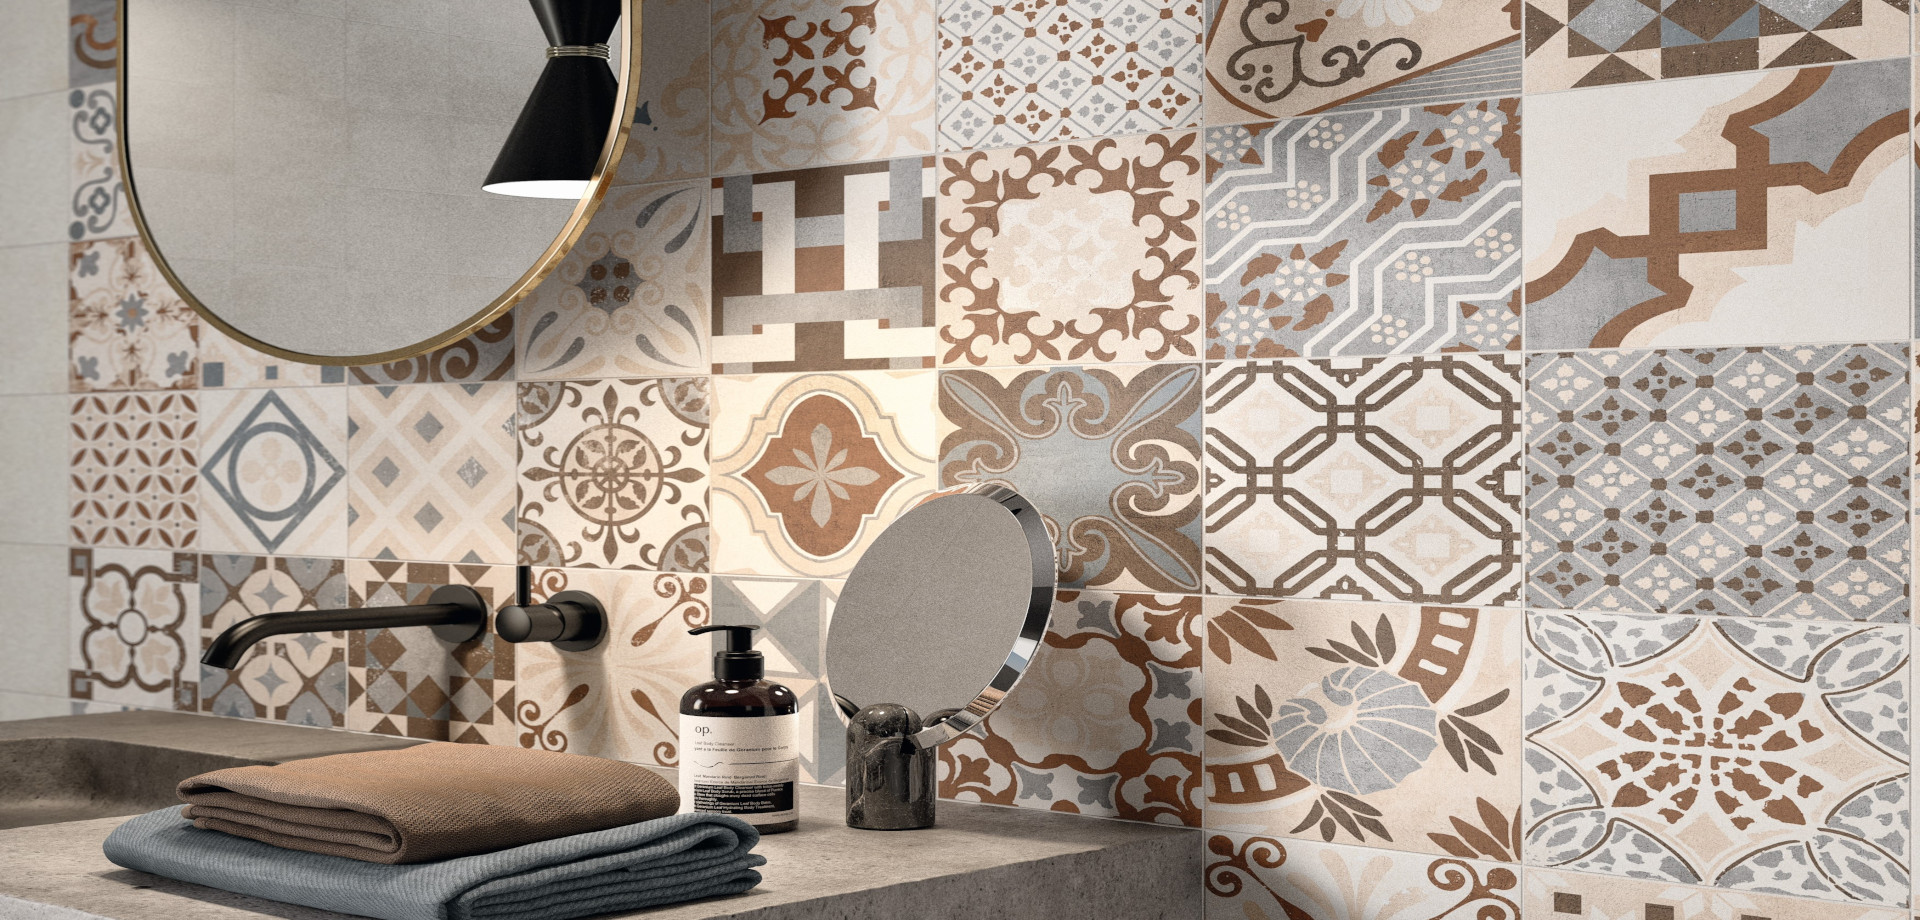 Decorative Tiles Stylish Tiles Floor Tiles Wall